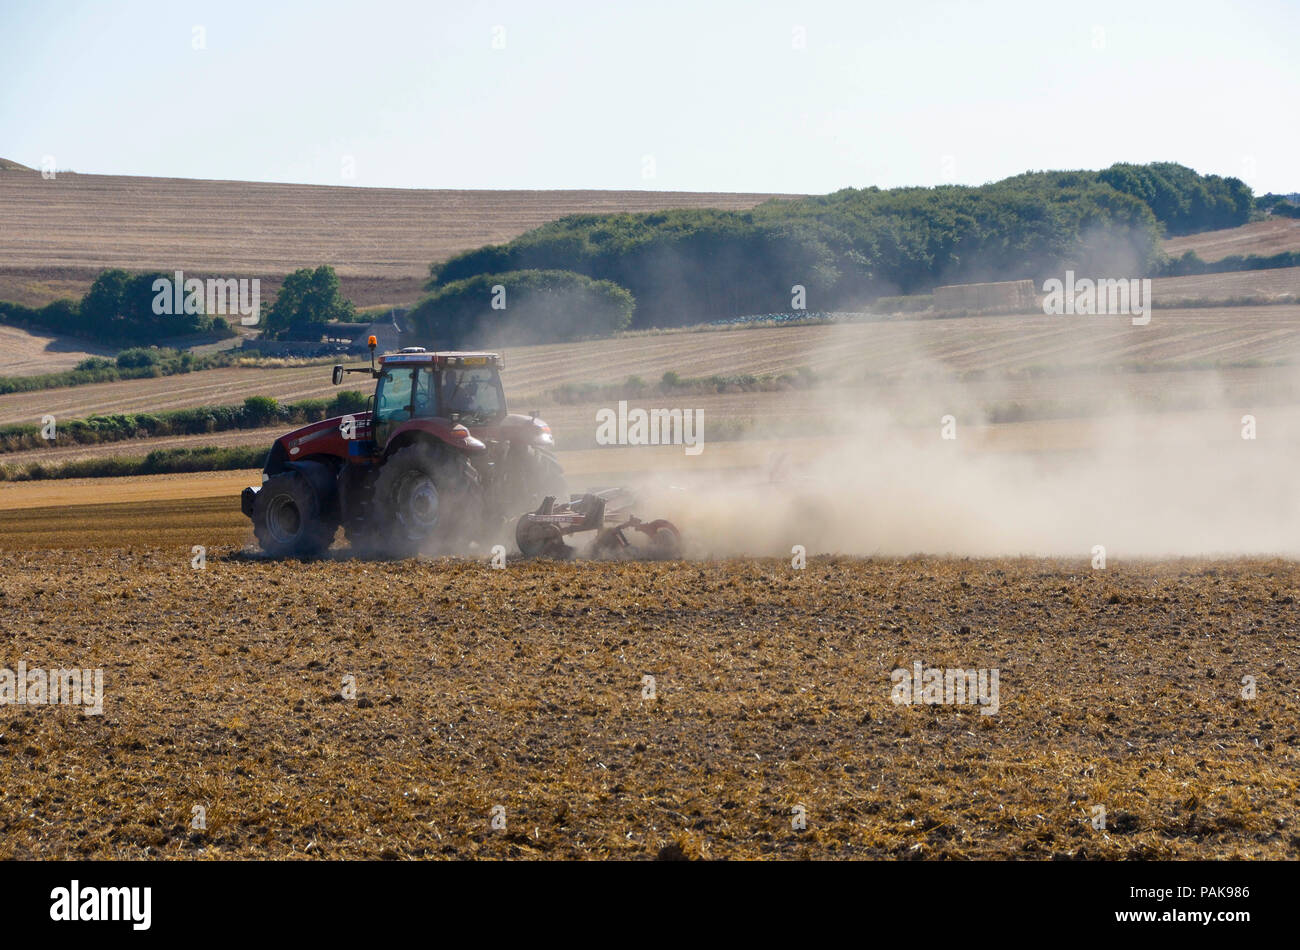 Came Down, Dorchester, Dorset, UK.  23rd July 2018. UK Weather.  A farmer with a tractor cultivating a field throws up plumes of dust from the parched land at Came Down near Dorchester in Dorset as the heatwave and drought continues.  Picture Credit: Graham Hunt/Alamy Live News - Stock Image